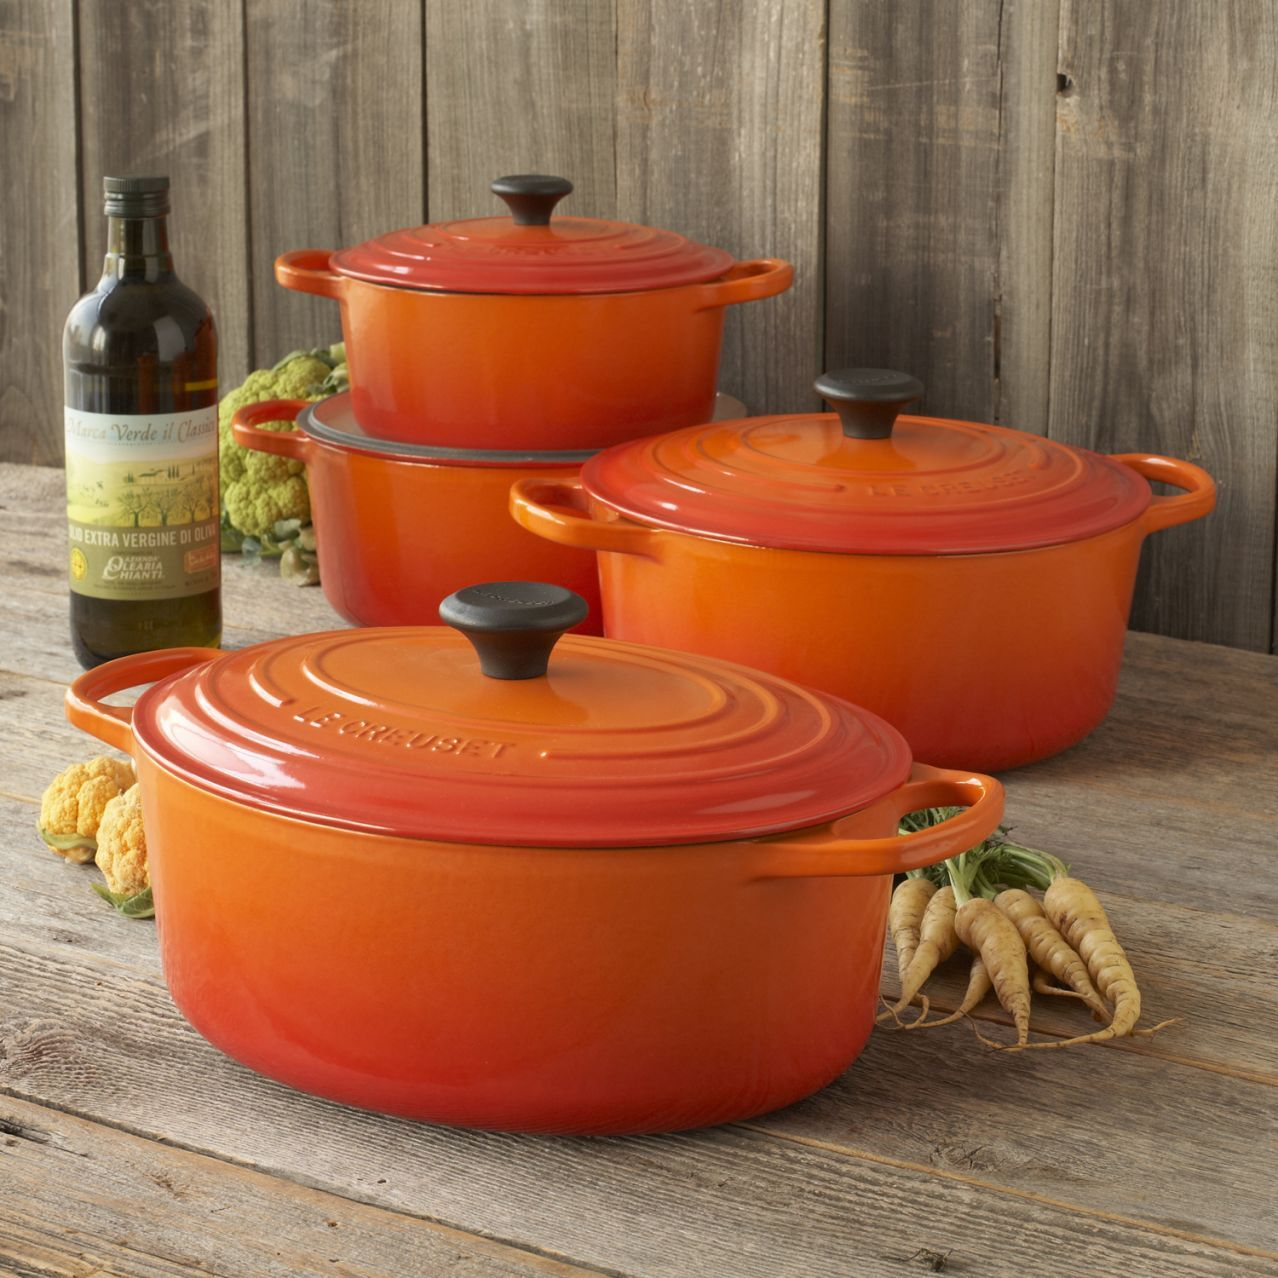 Captivating Le Creuset® Signature Flame Round French Ovens | Sur La Table